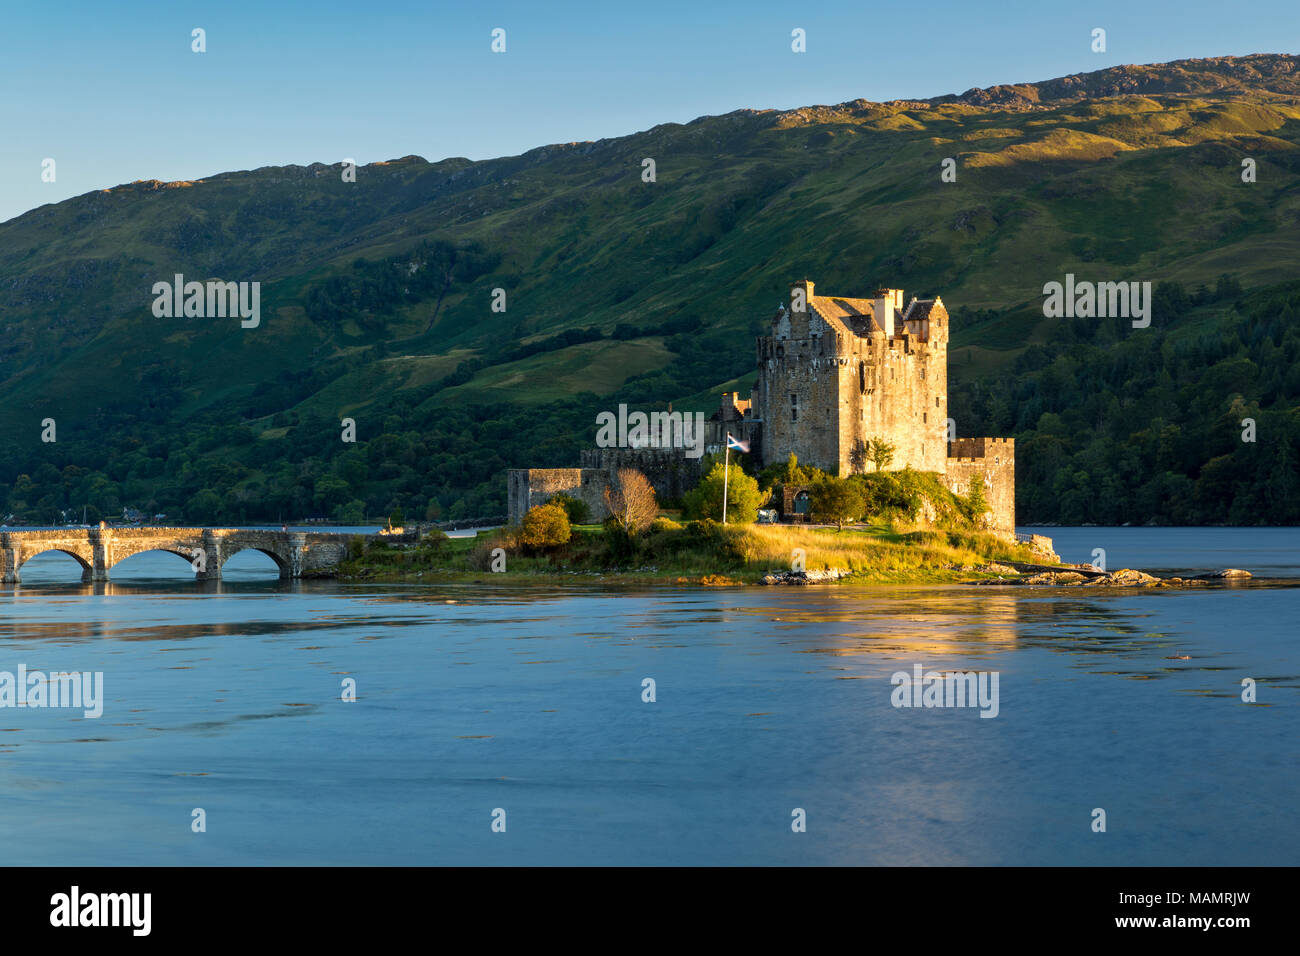 Evening sunlight over Eilean Donan Castle along Loch Duich, Dornie, Highlands, Scotland - Stock Image